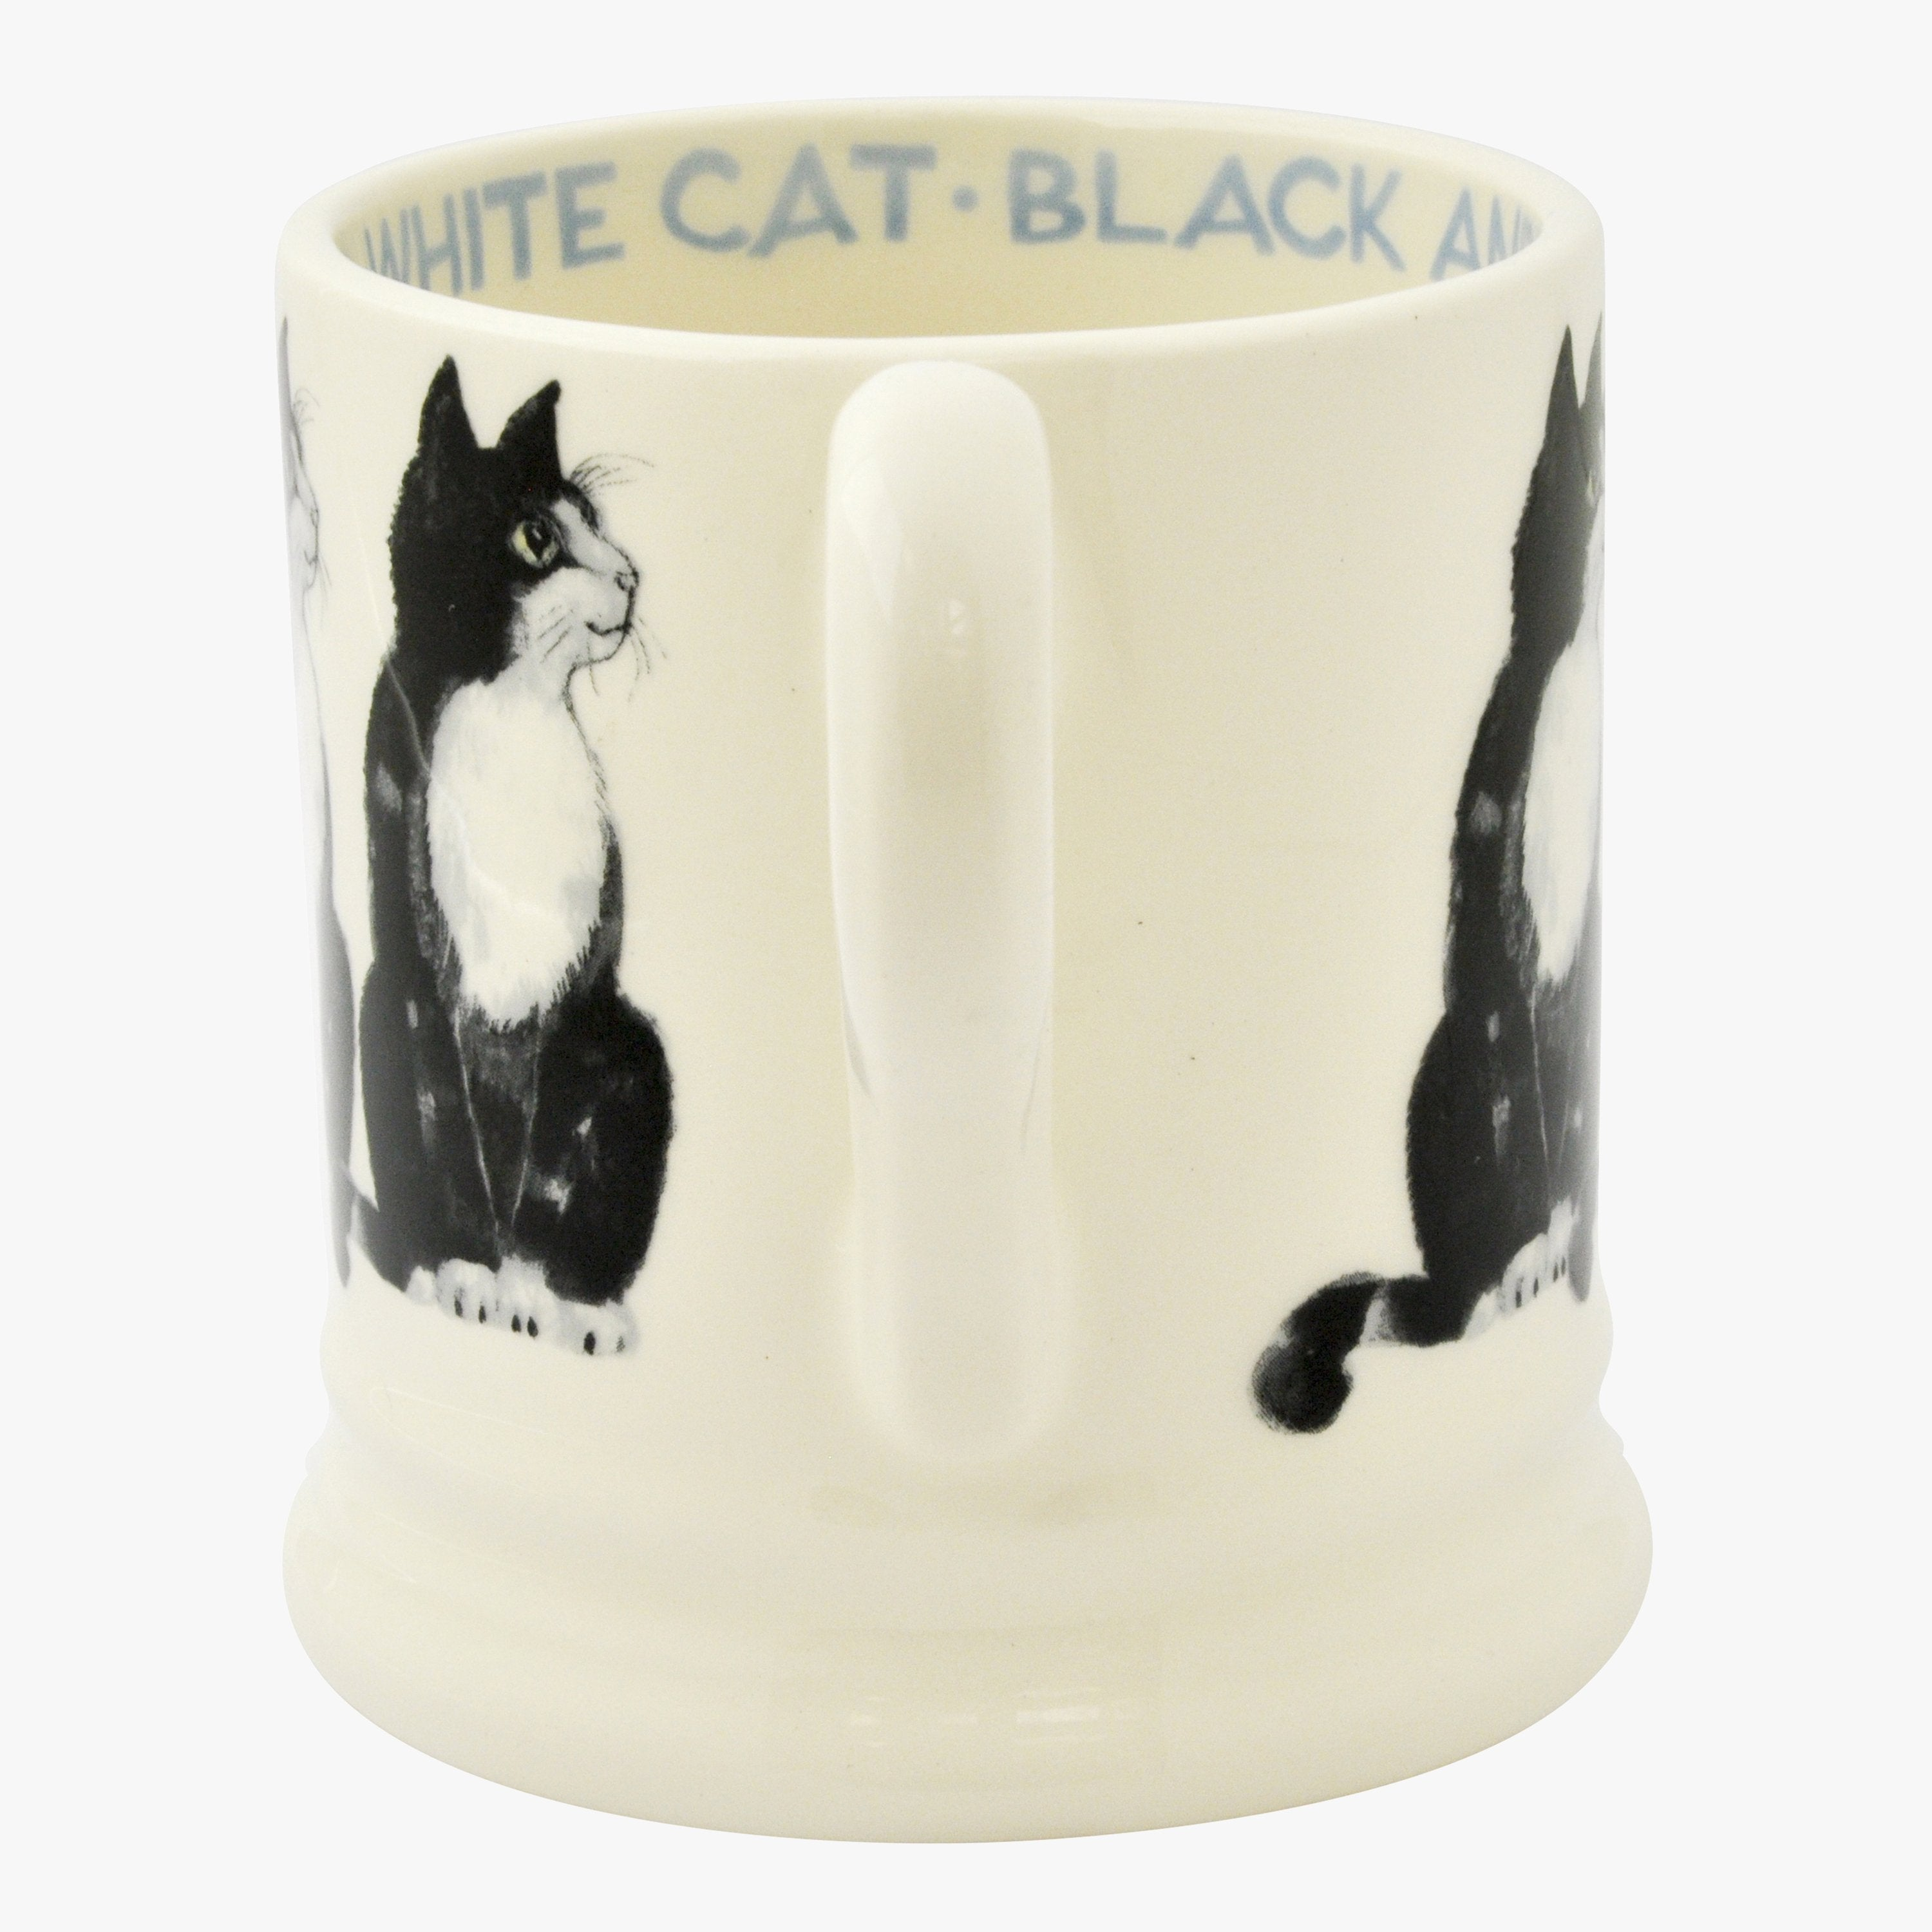 Personalised MUG CAT LOVERS GREAT GIFT IDEAS BIRTHDAY Gifts Ideas